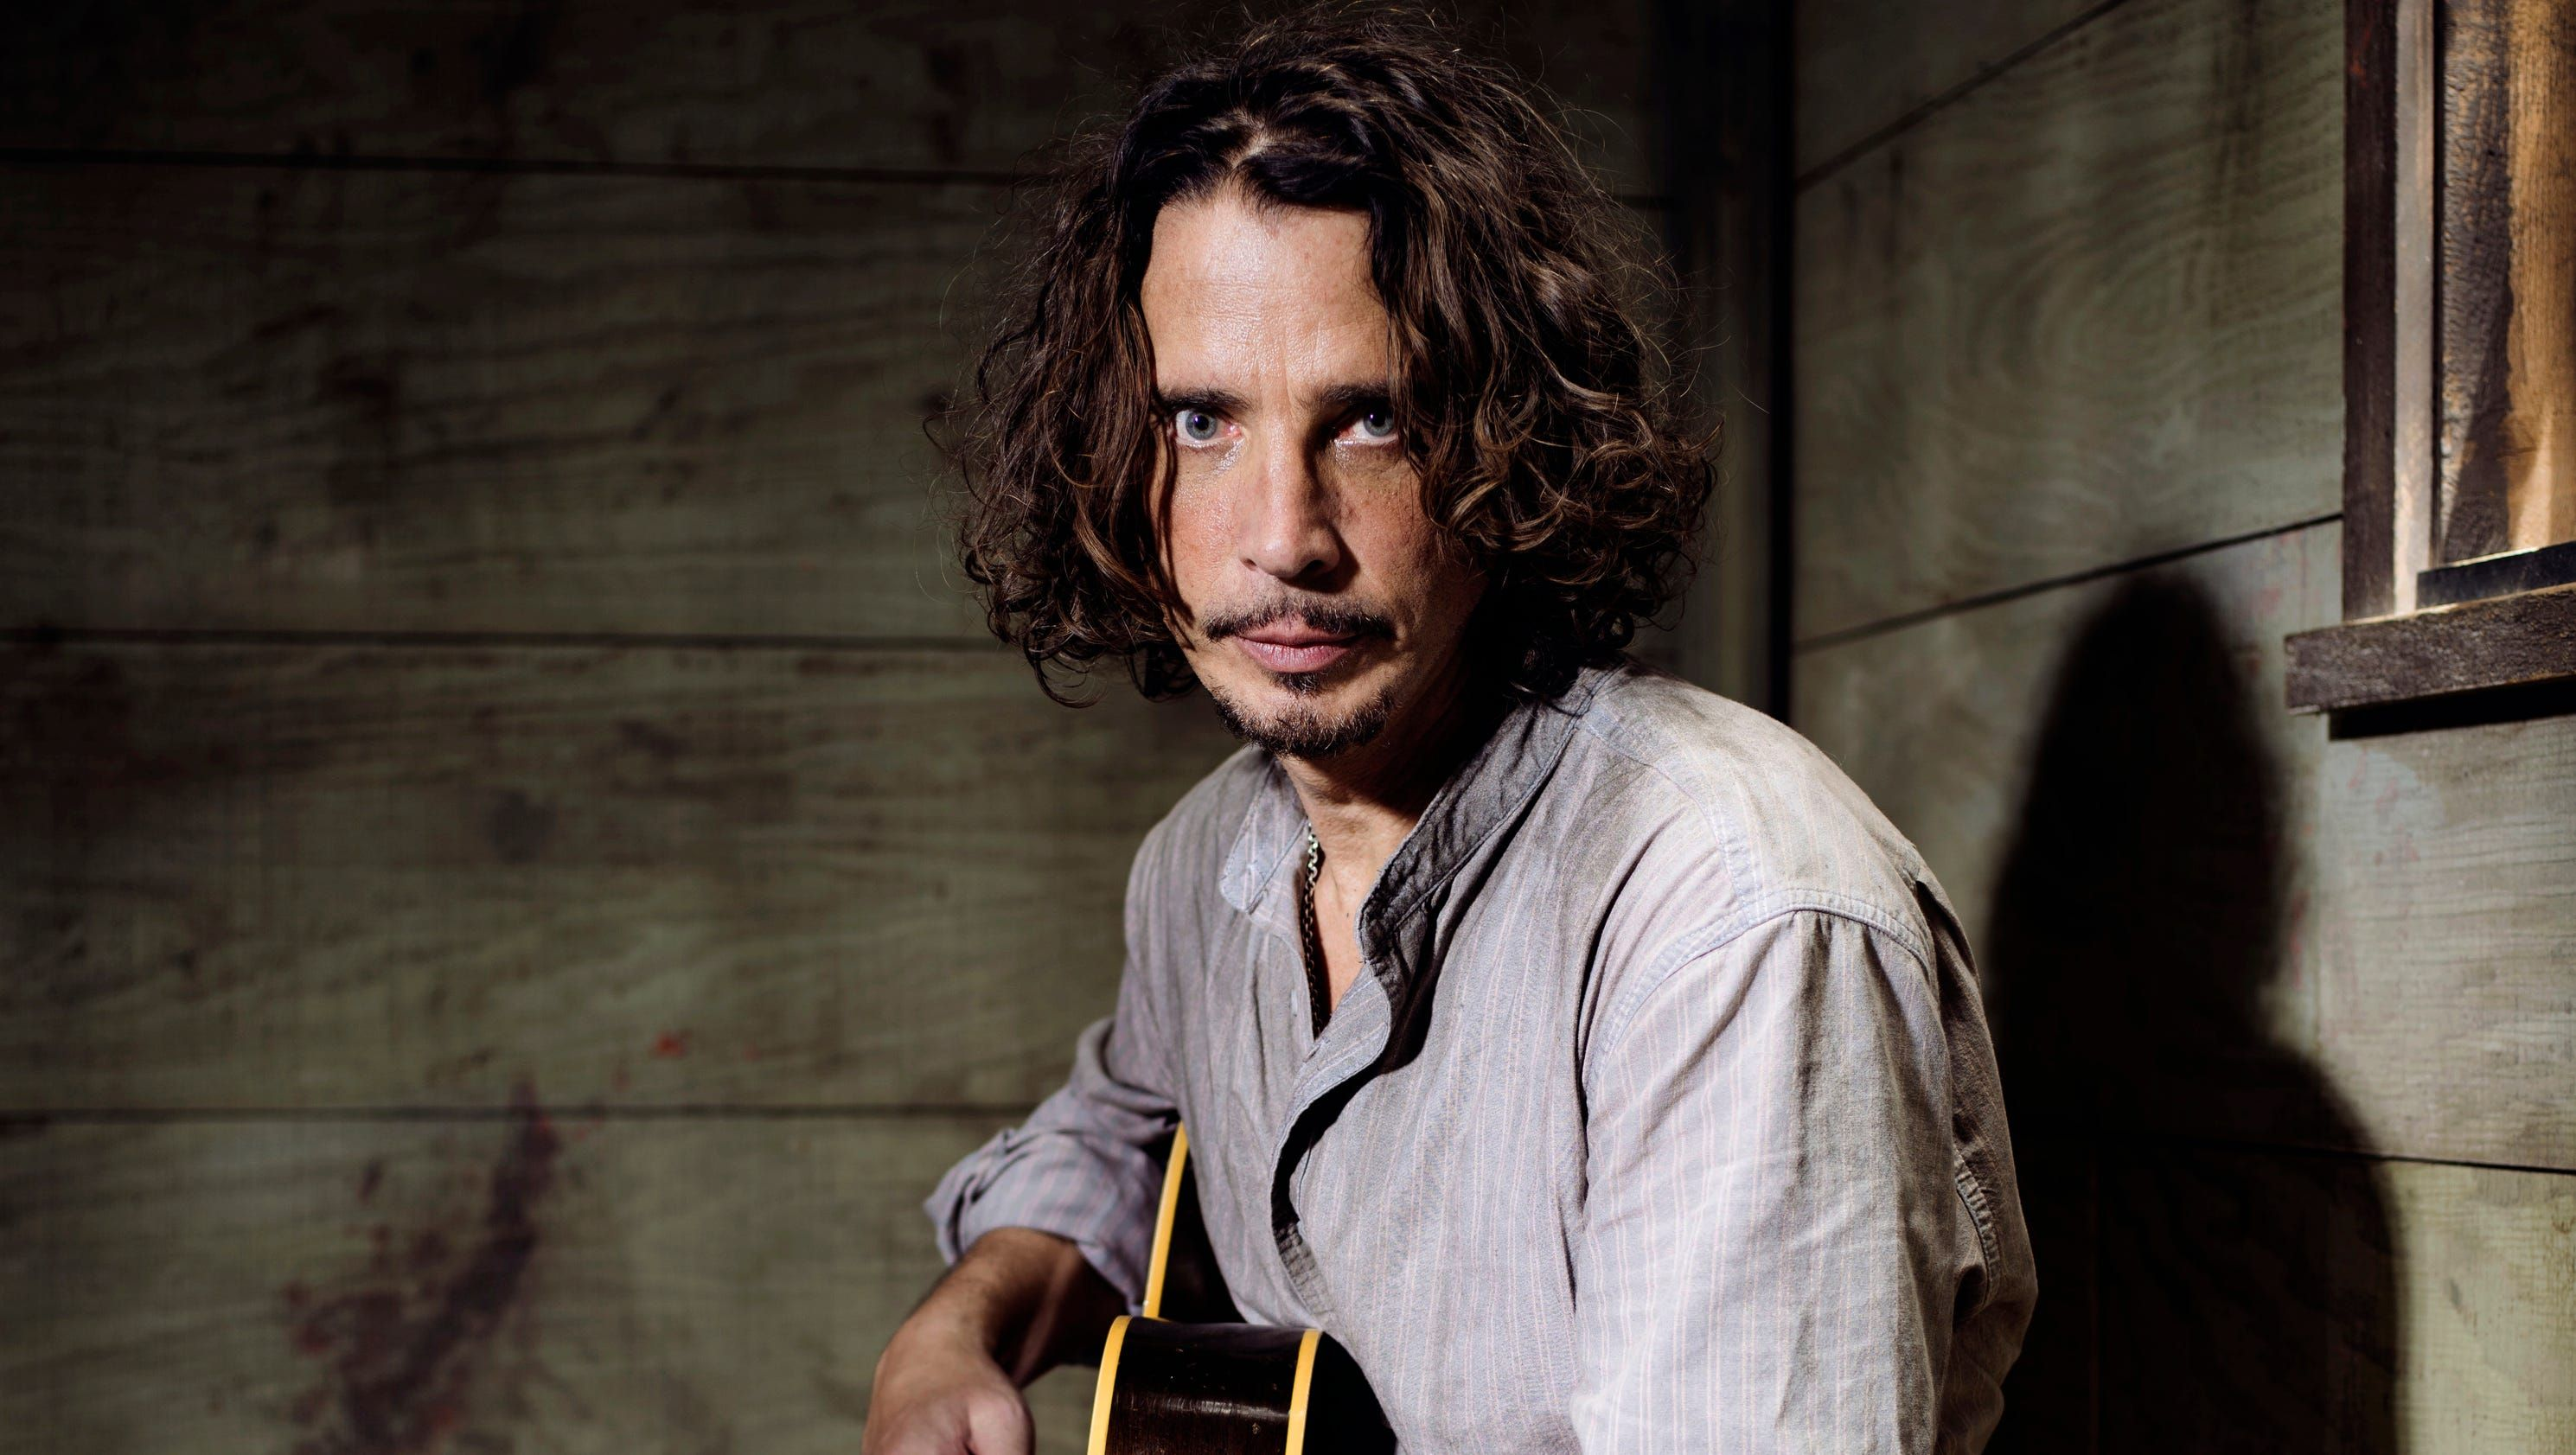 Death of Chris Cornell: Timeline of Soundgarden singer's last hours - Detroit Free Press